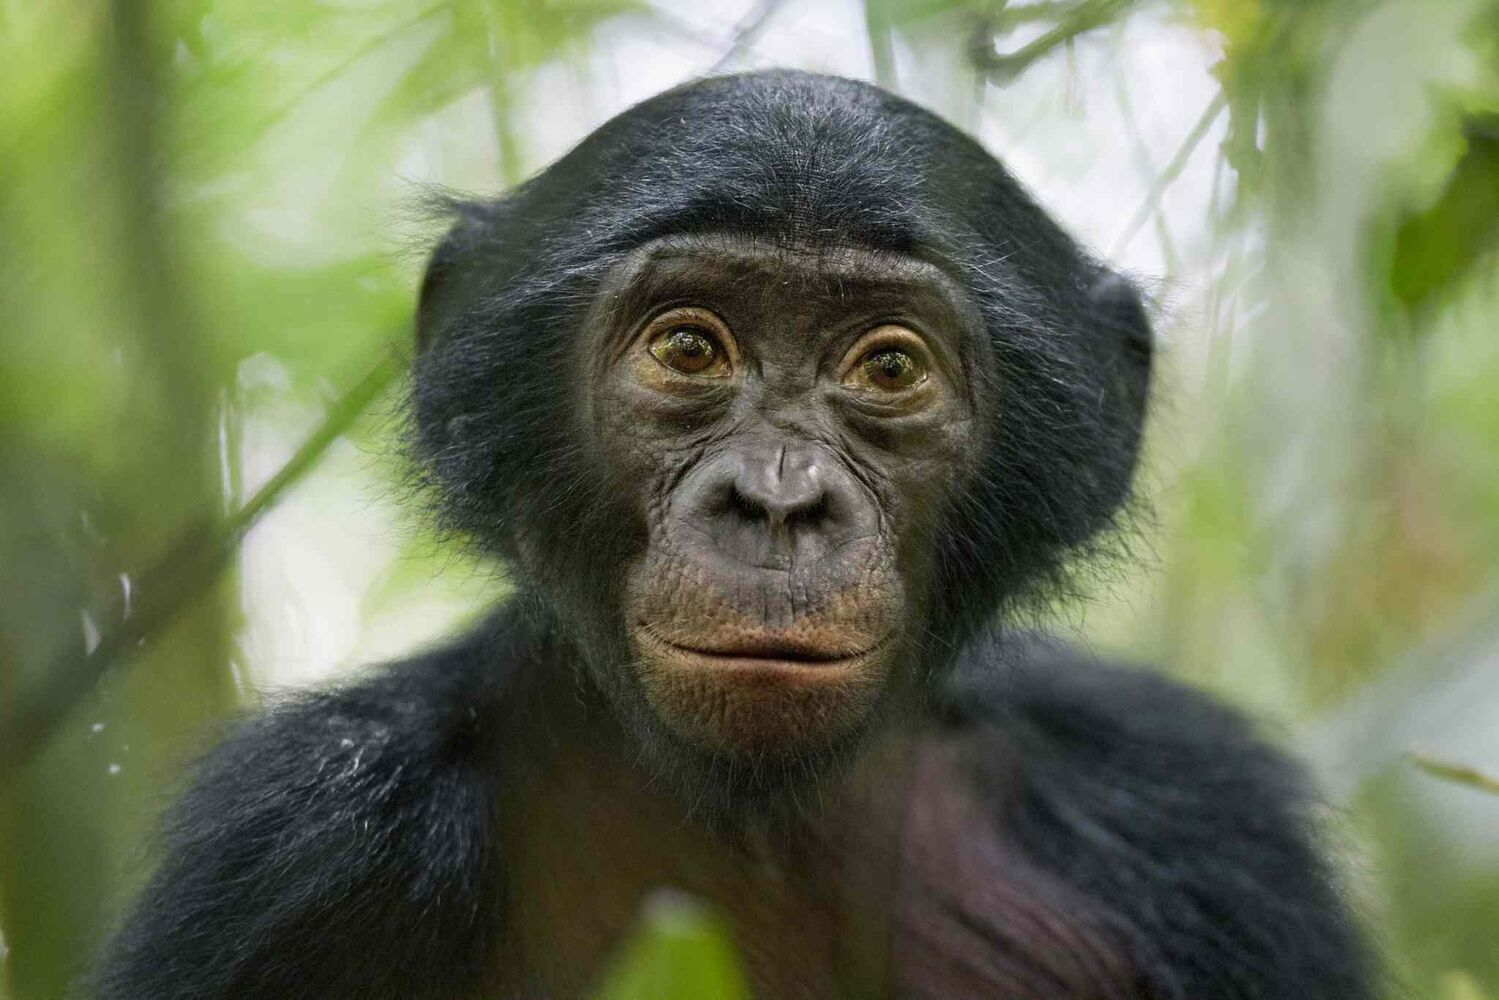 Third prize in the Nature Stories category by Christian Ziegler of Germany<p> A five-year-old bonobo of a wild group of bonobos near the Kokolopori Bonobo Reserve in the Democratic Republic of Congo on Jan. 25, 2011.  (Christian Ziegler, National Geographic Magazine)